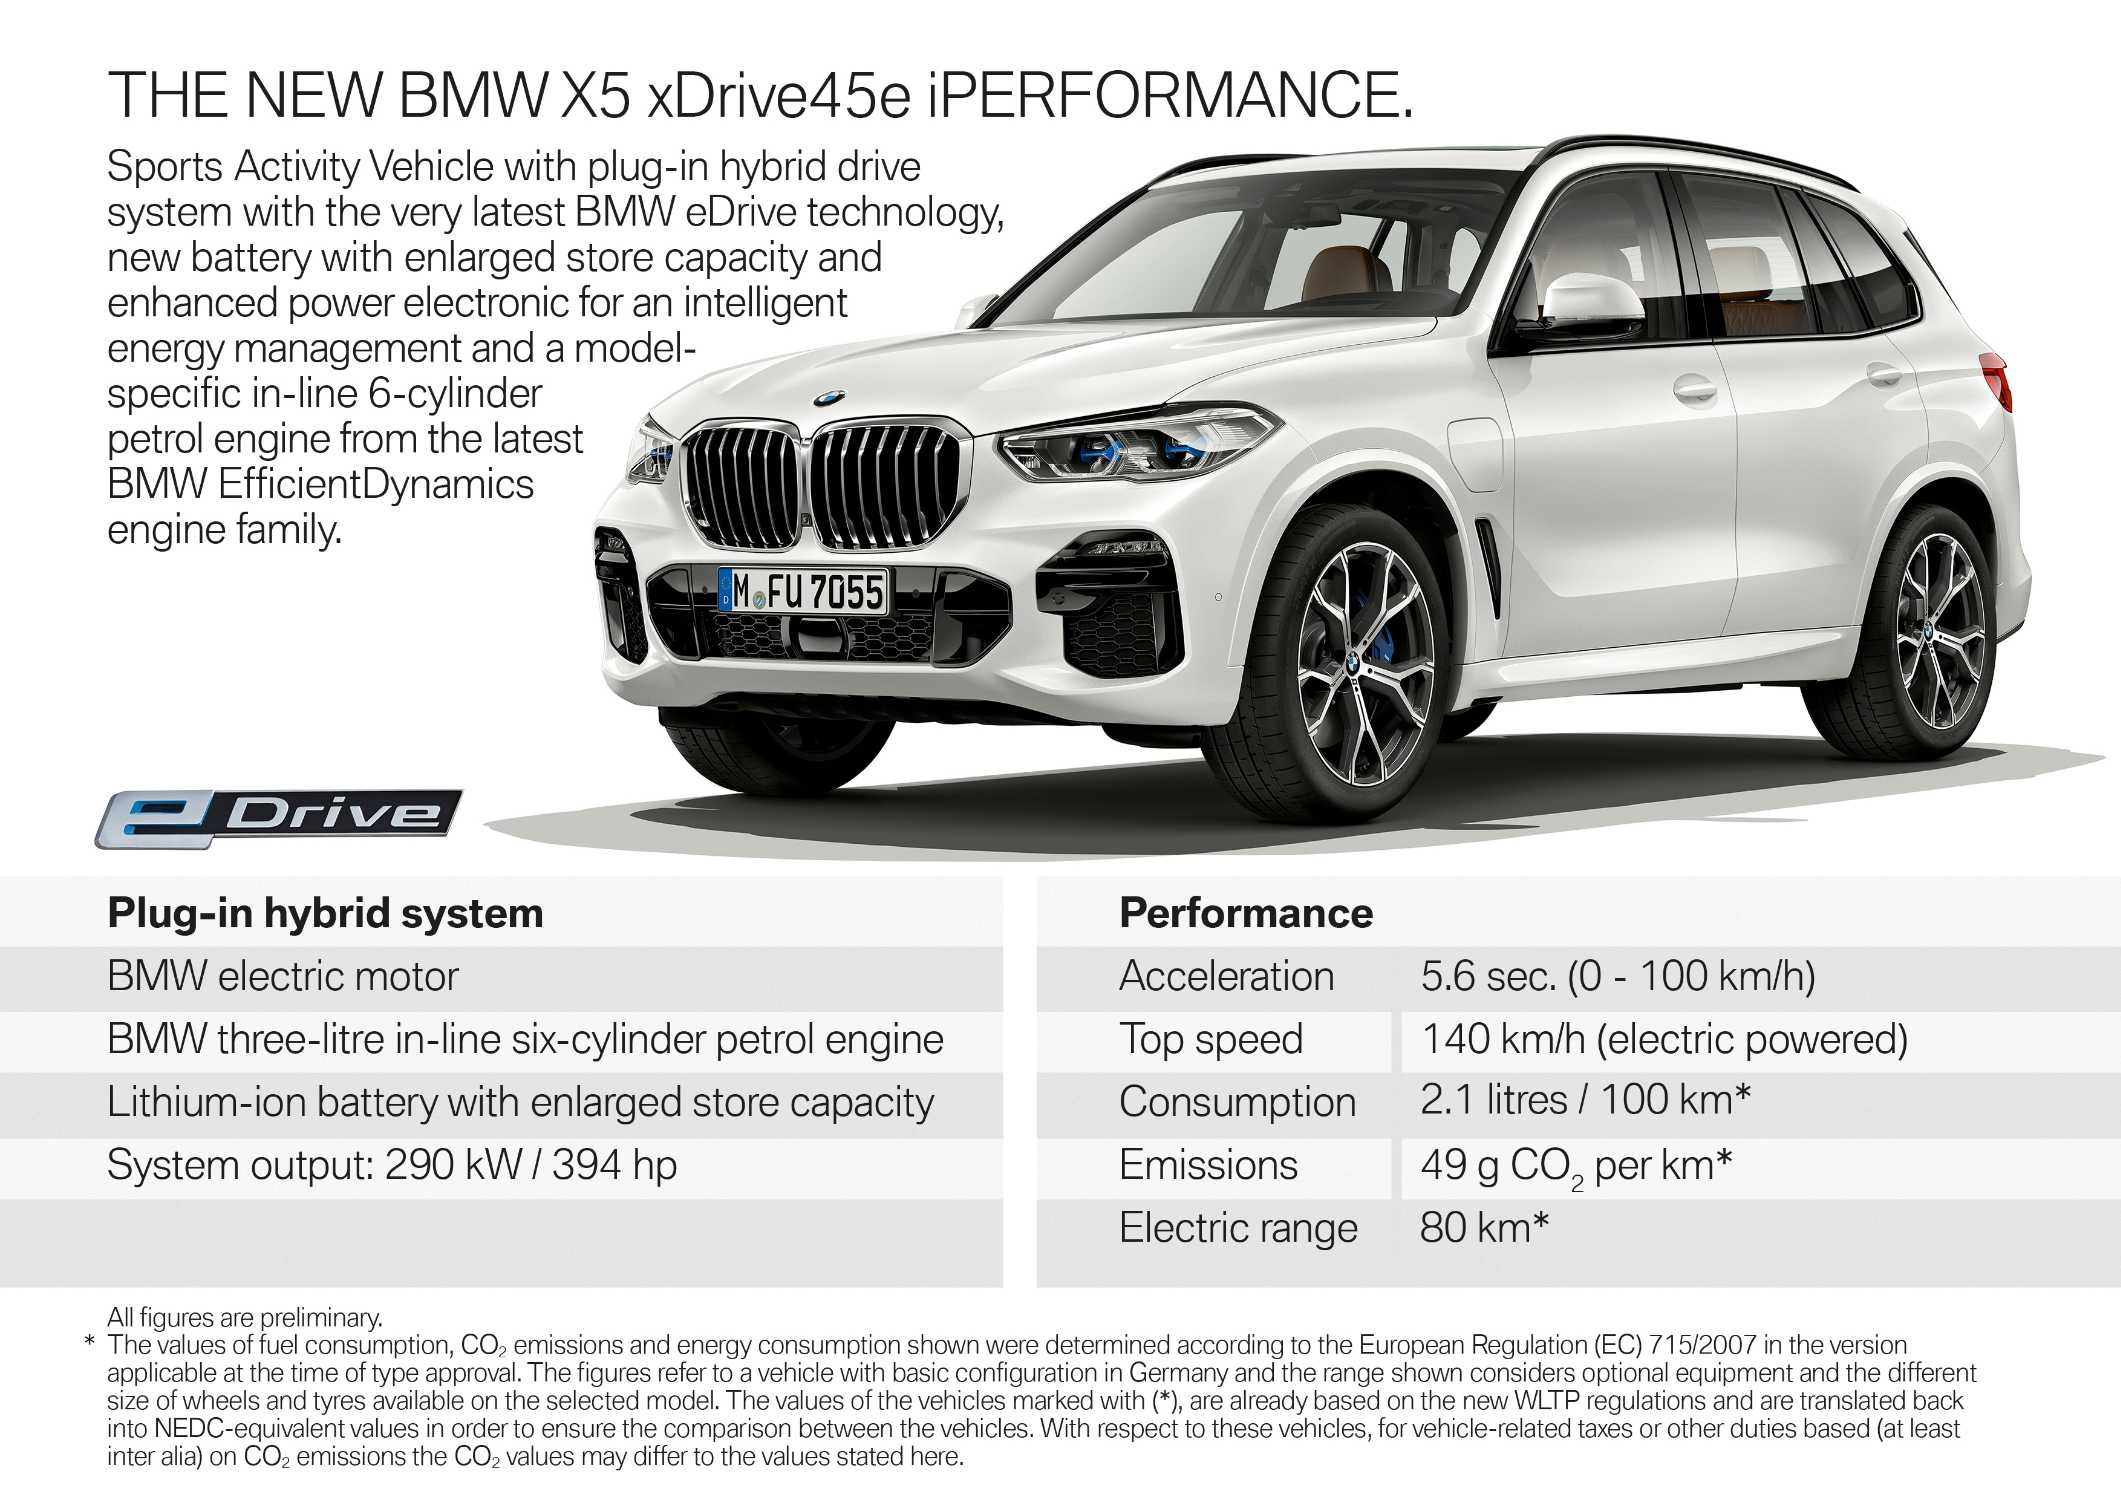 The new BMW X5 xDrive45e iPerformance - Product highlights (09/2018).